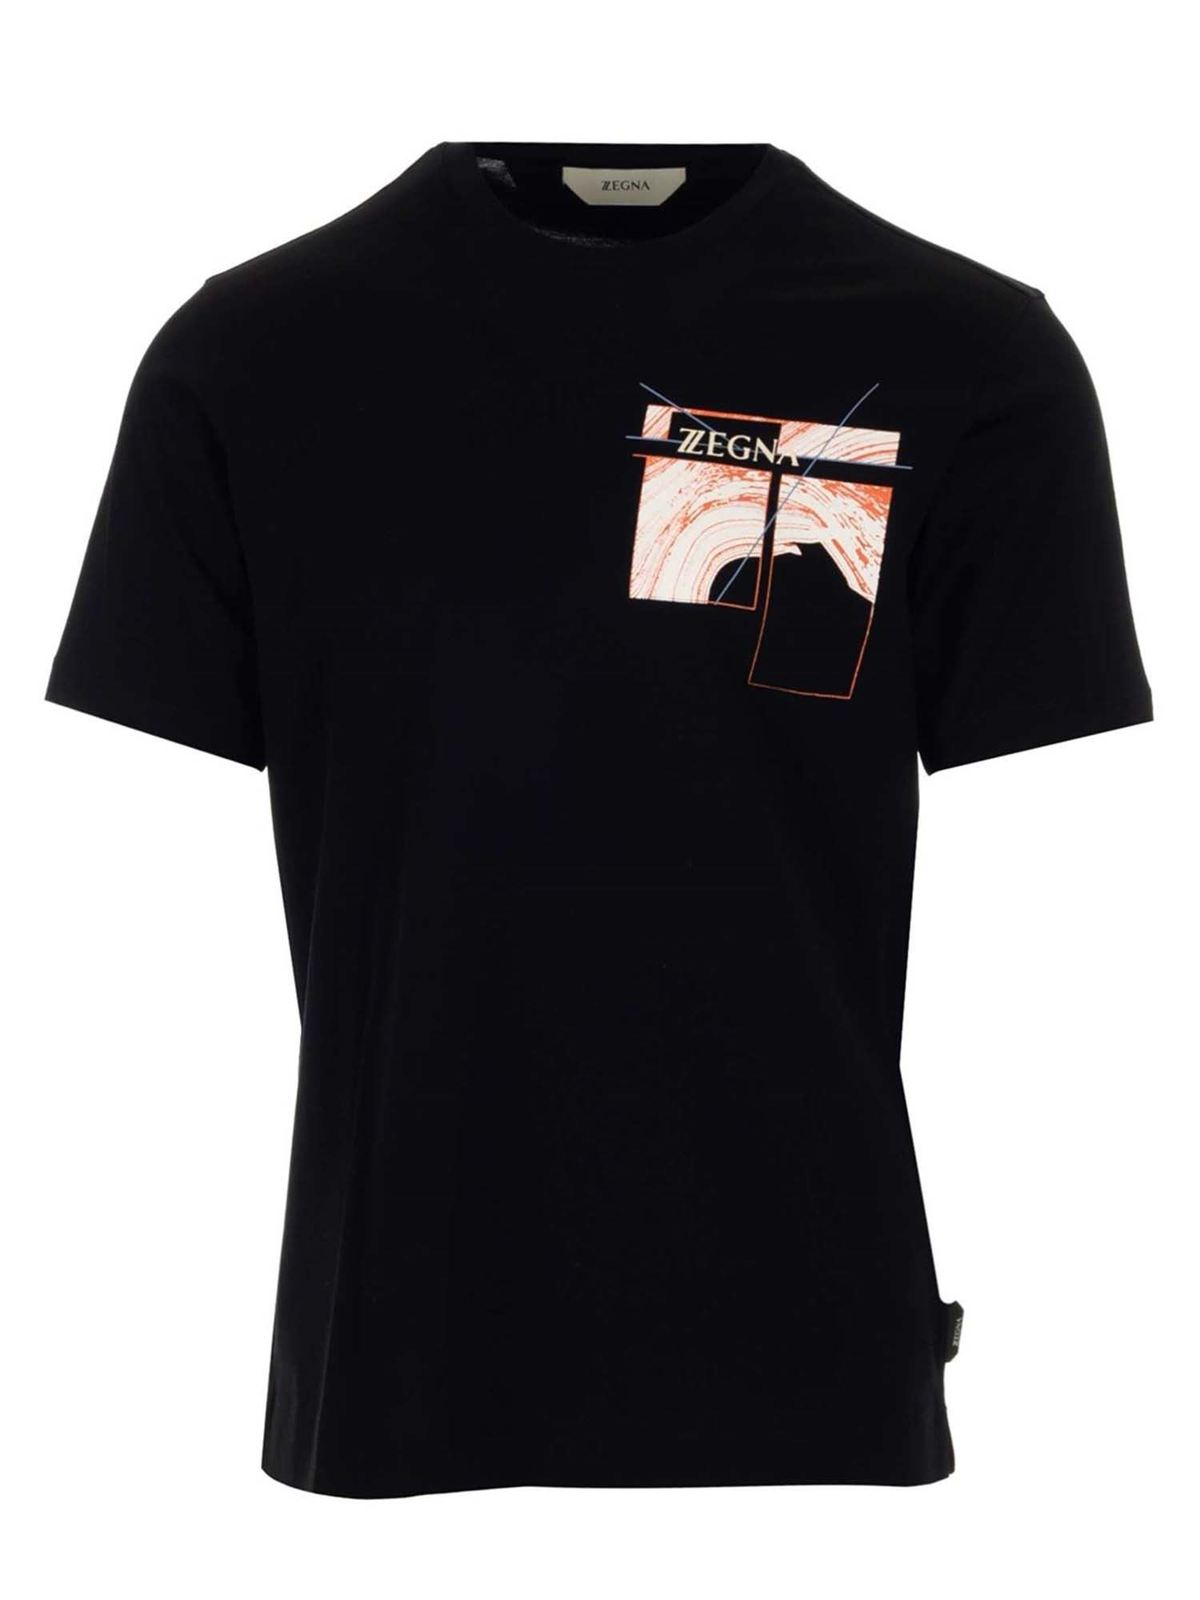 Z Zegna Cottons CONTRASTING PRINTS T-SHIRT IN BLACK